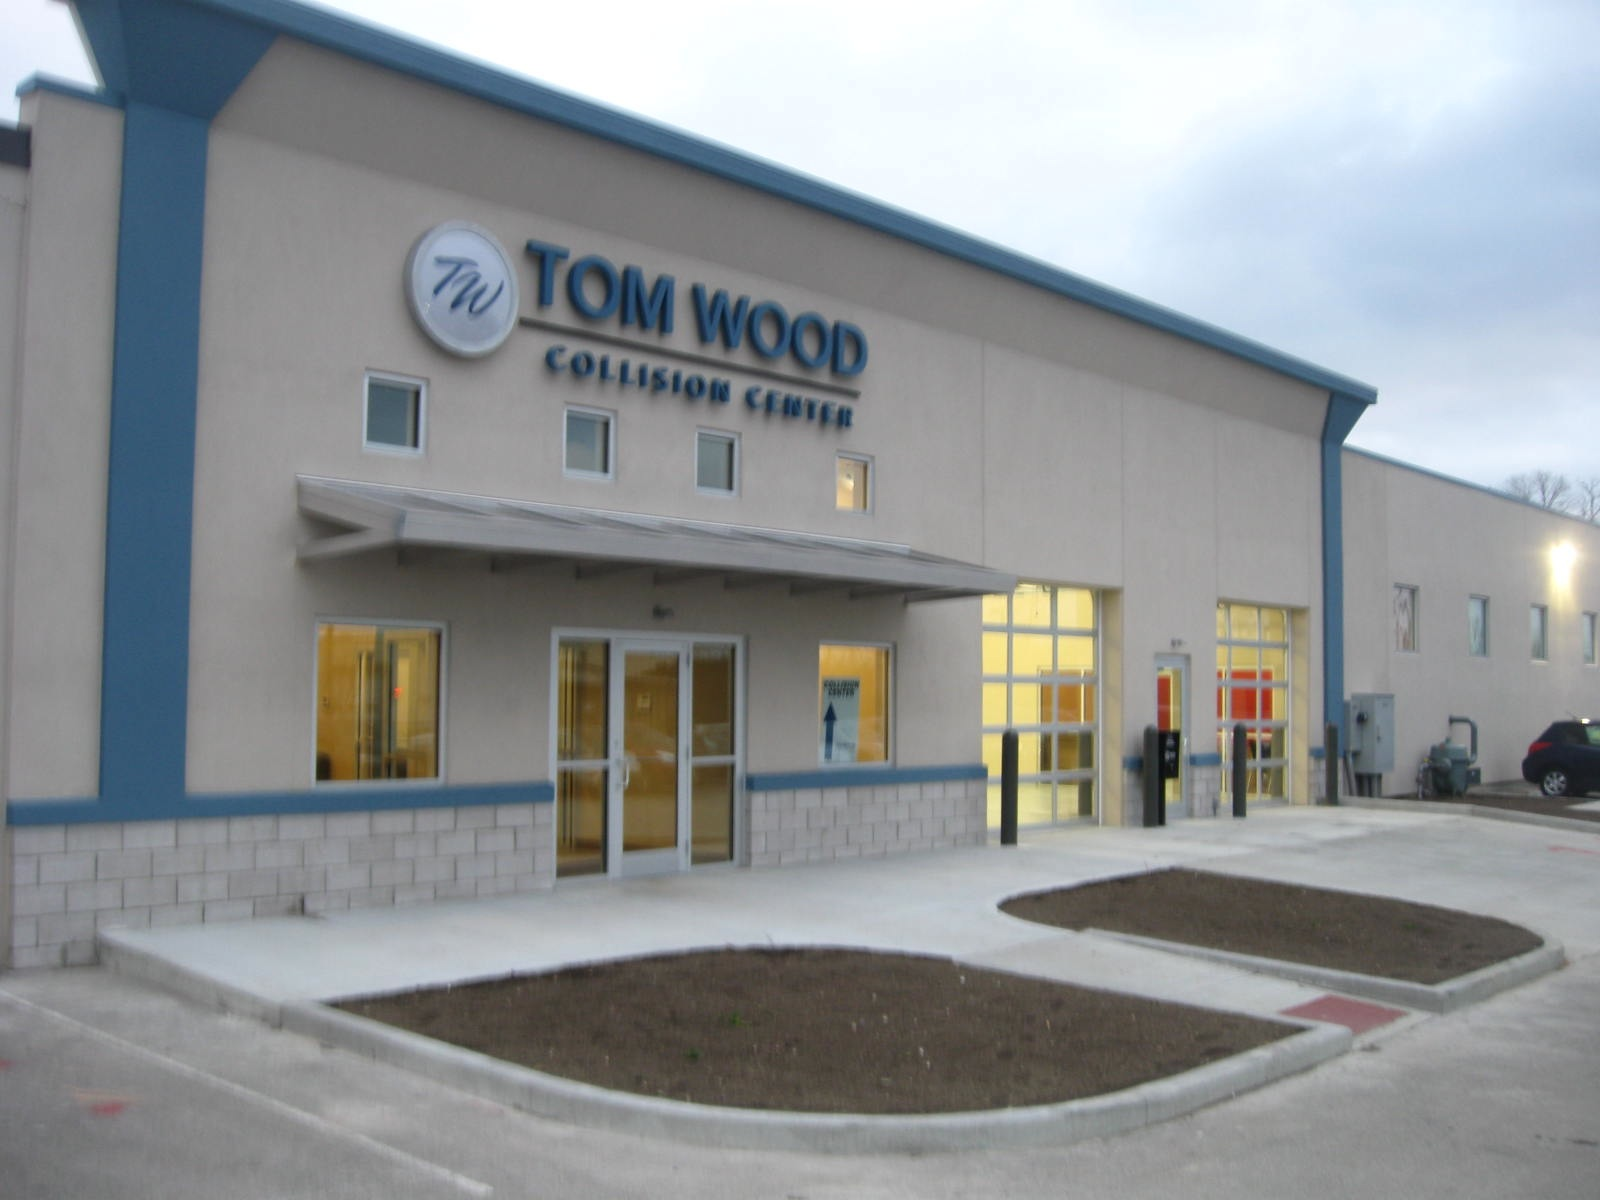 Tom Wood Collision Center Cpm Construction Indianapolis